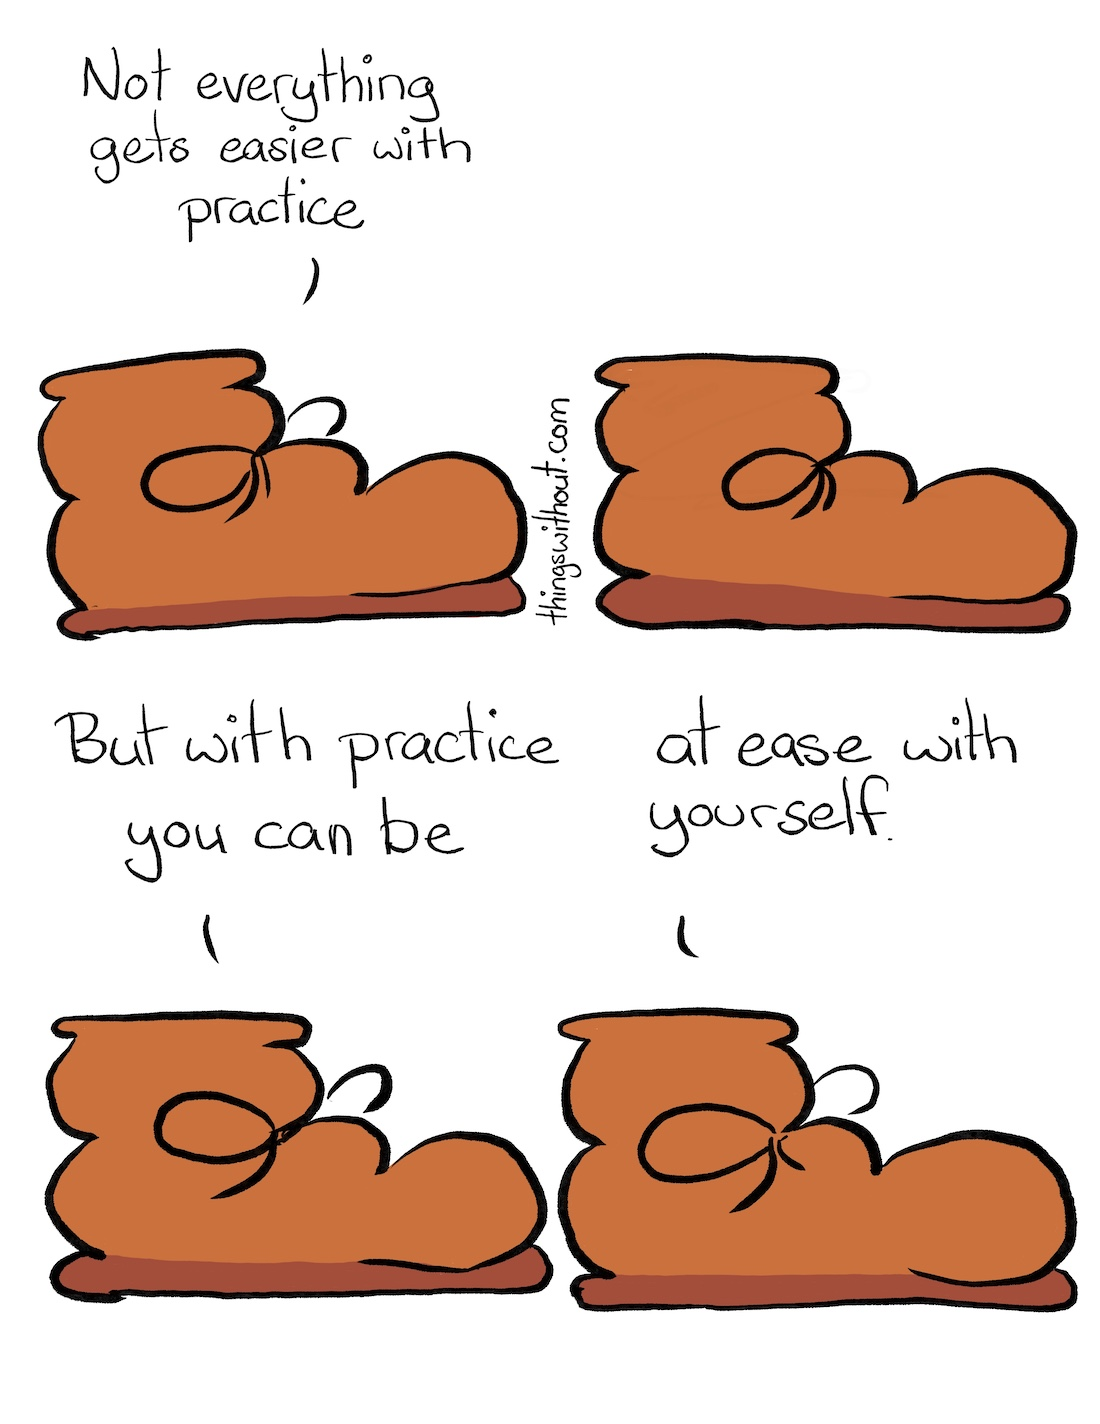 At Ease Comic Transcript A brown boot with round laces and curved leather is talking to us. Boot: Not everything gets easier with practice. Boot sits in silence. Boot: But with practice you can be, at ease with yourself.